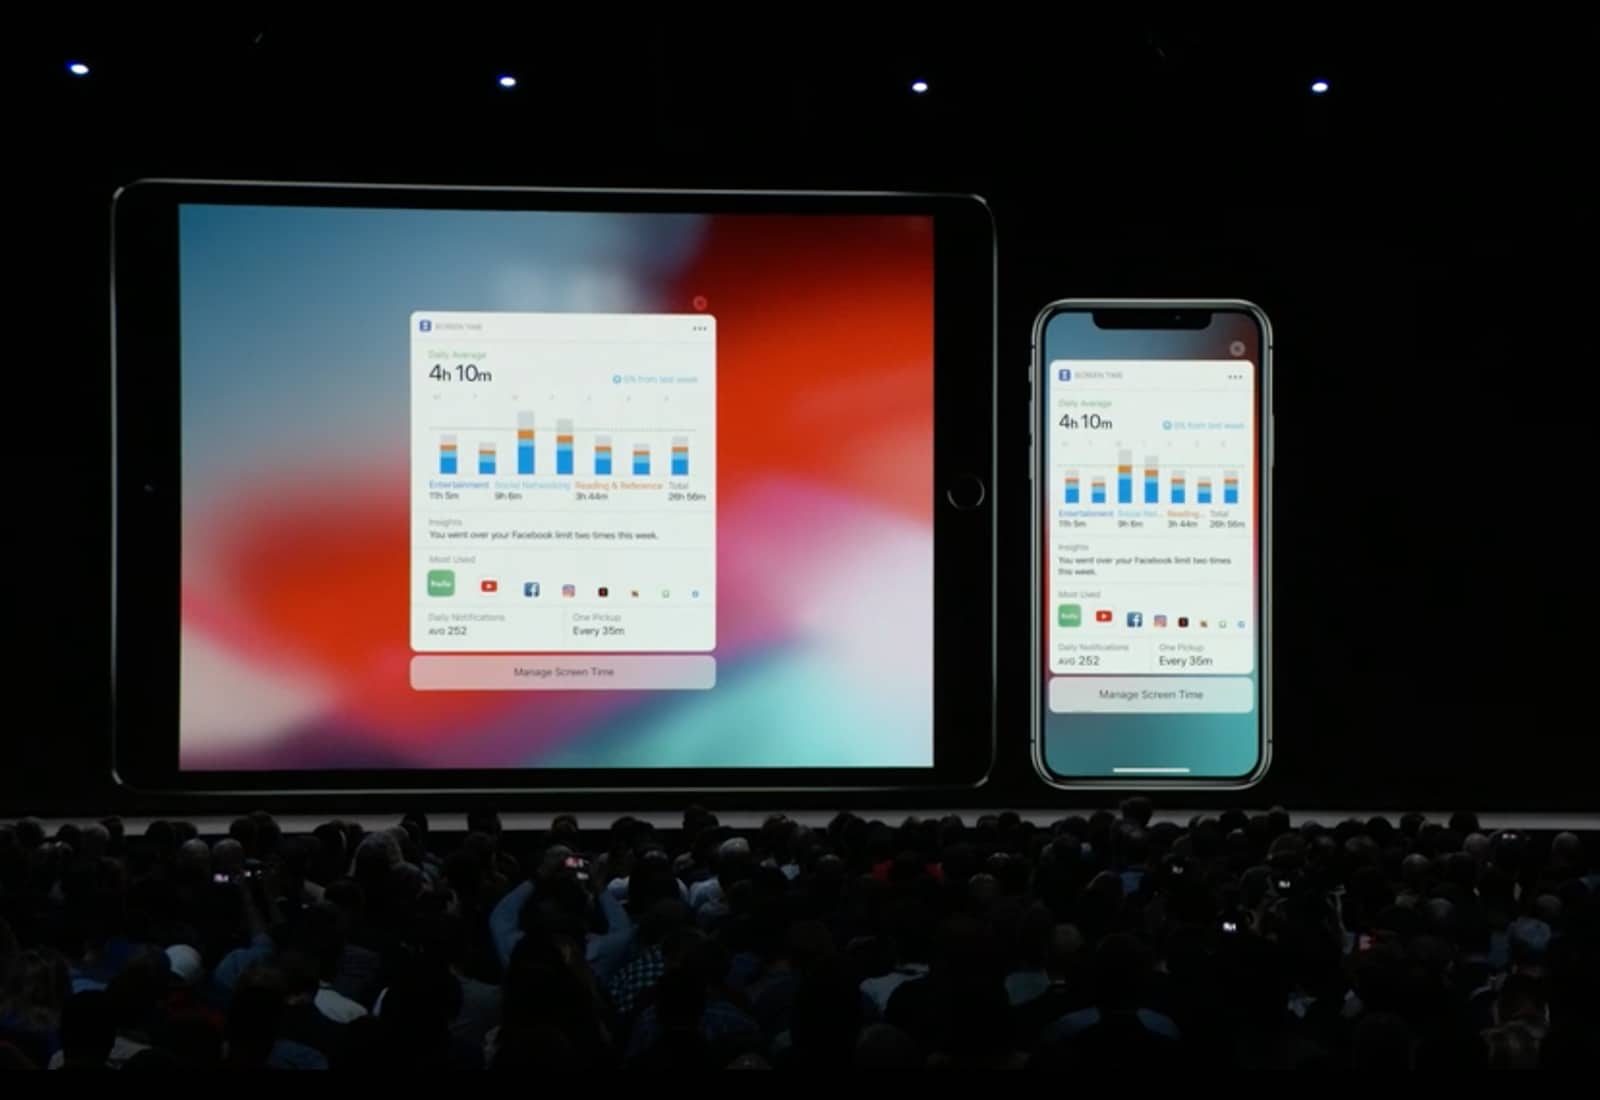 Screen Time iOS 12